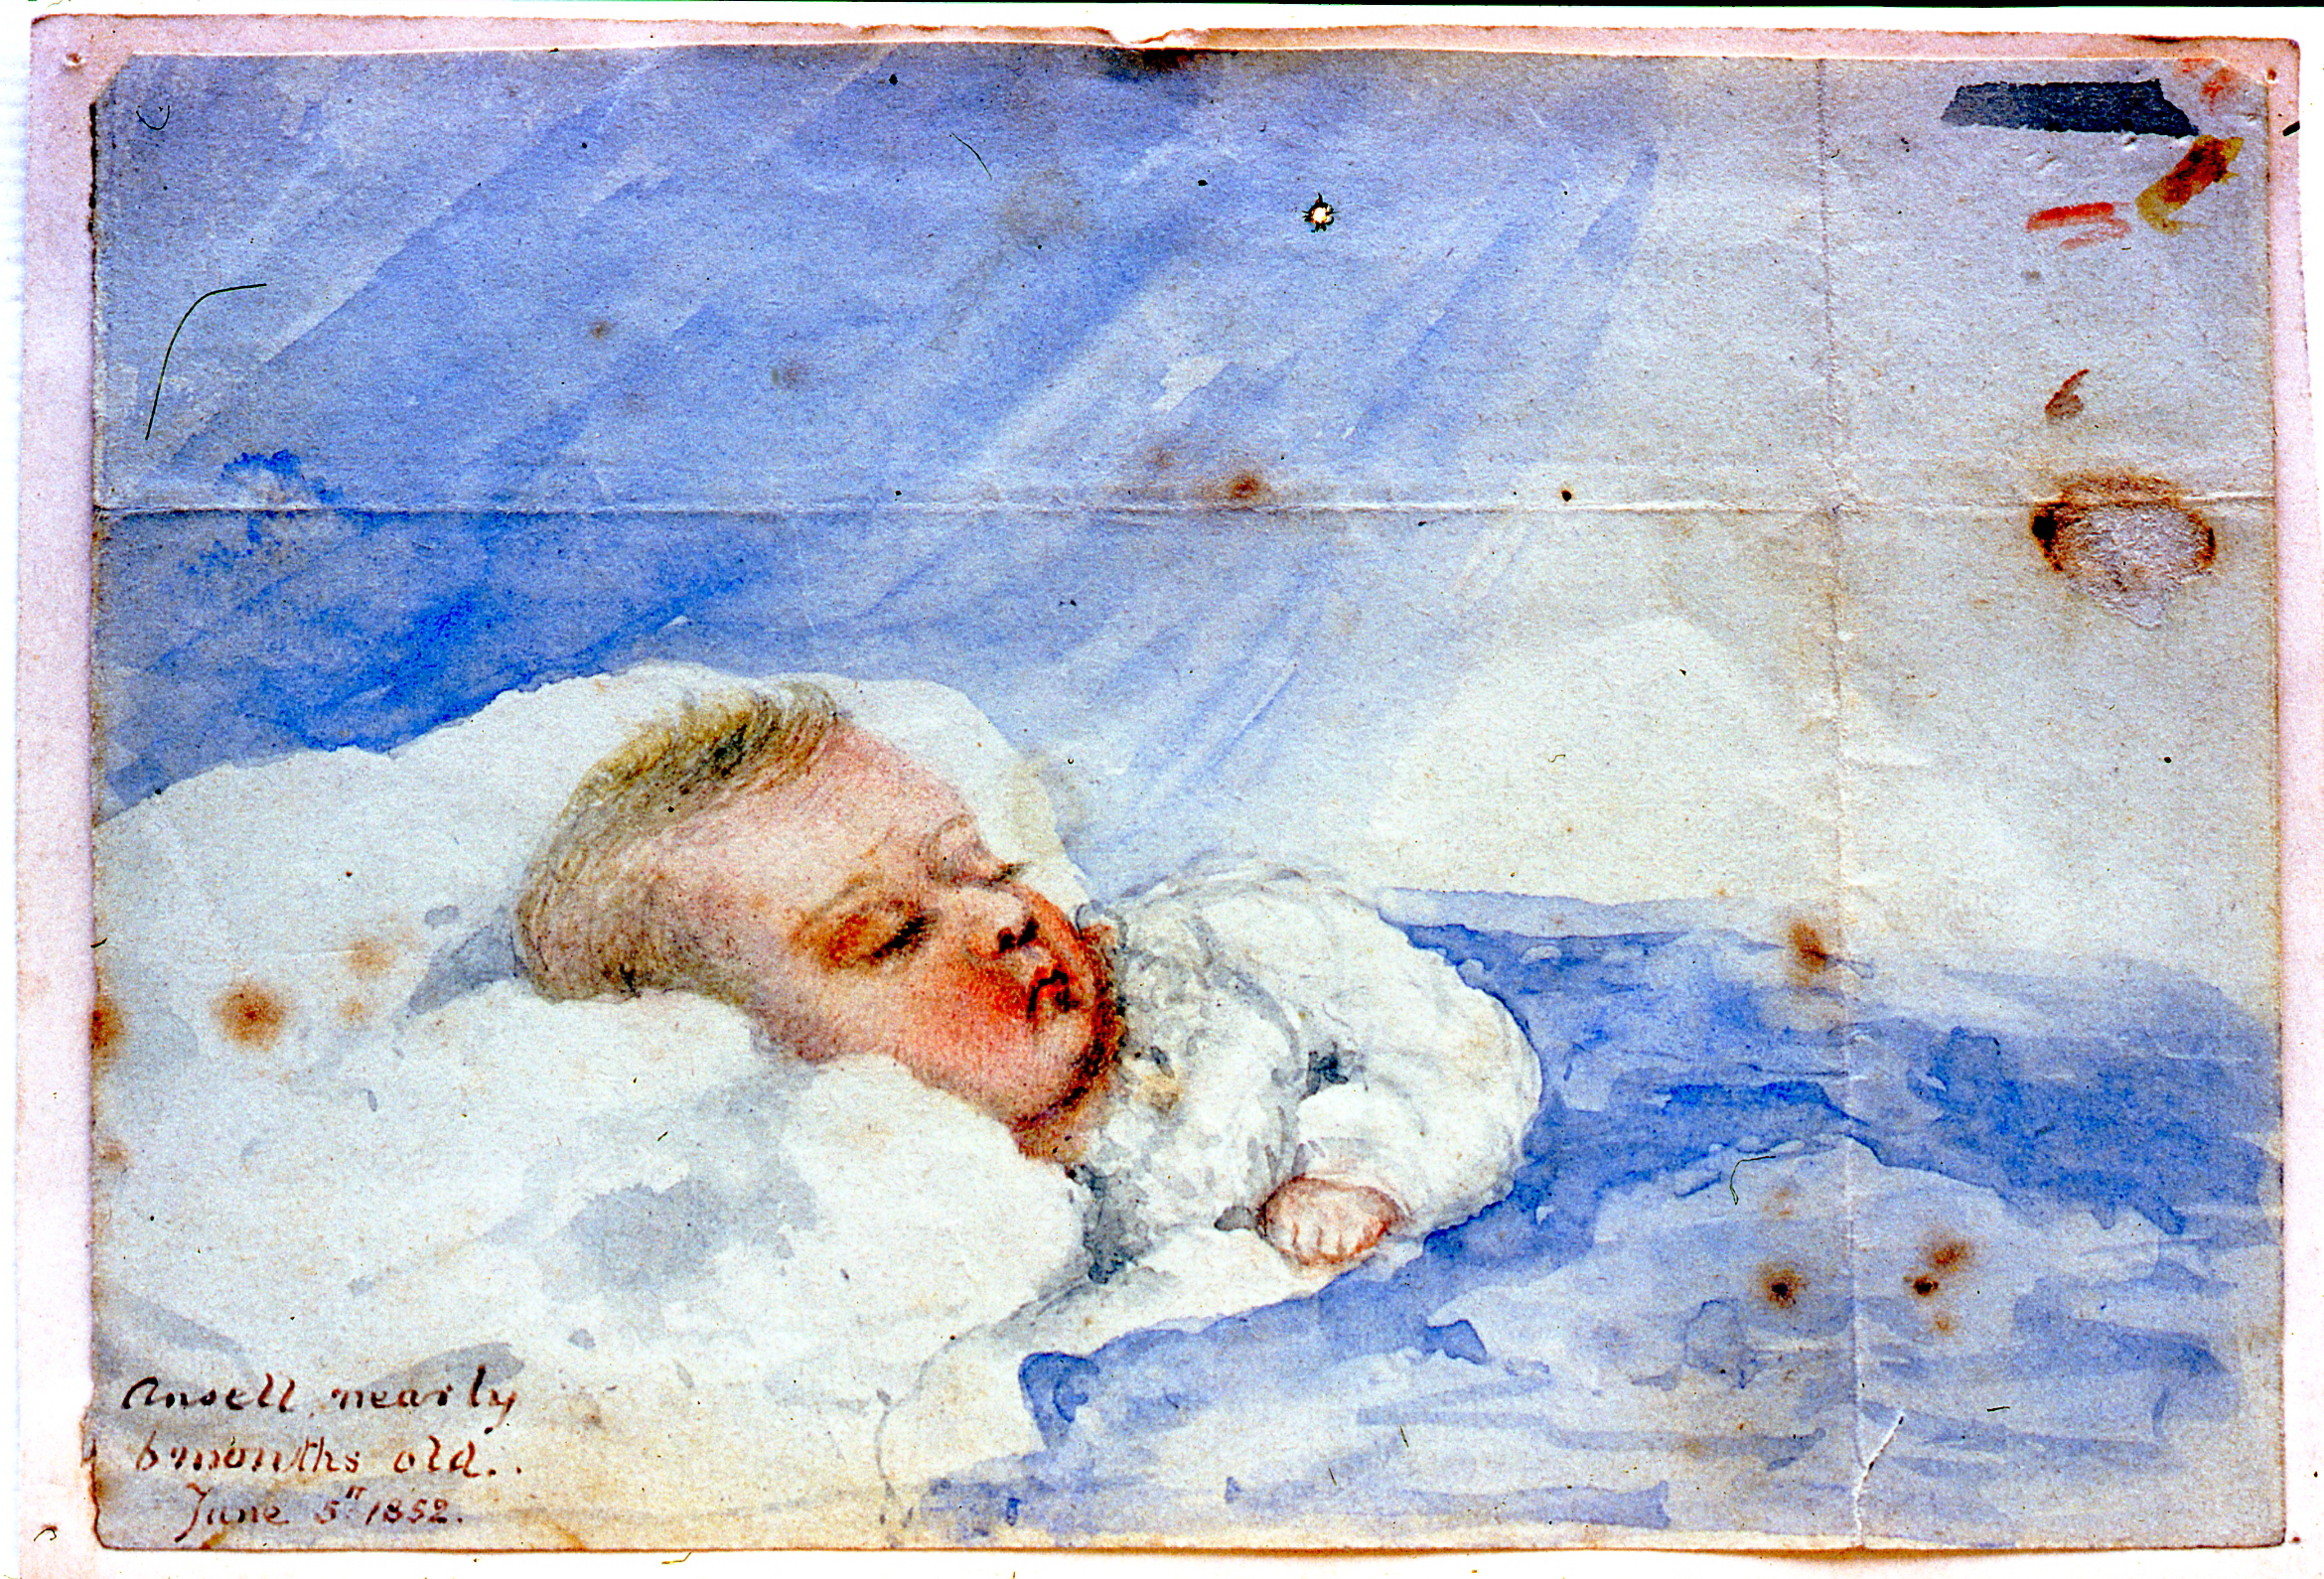 Ansell nearly 6 months old, June 5, 1852 , 1852, Julia Bullock Webster, watercolour on paper, 9.2 cm x 13.5 cm, 2003.02.32, gift of The Grist Mill at Keremeos